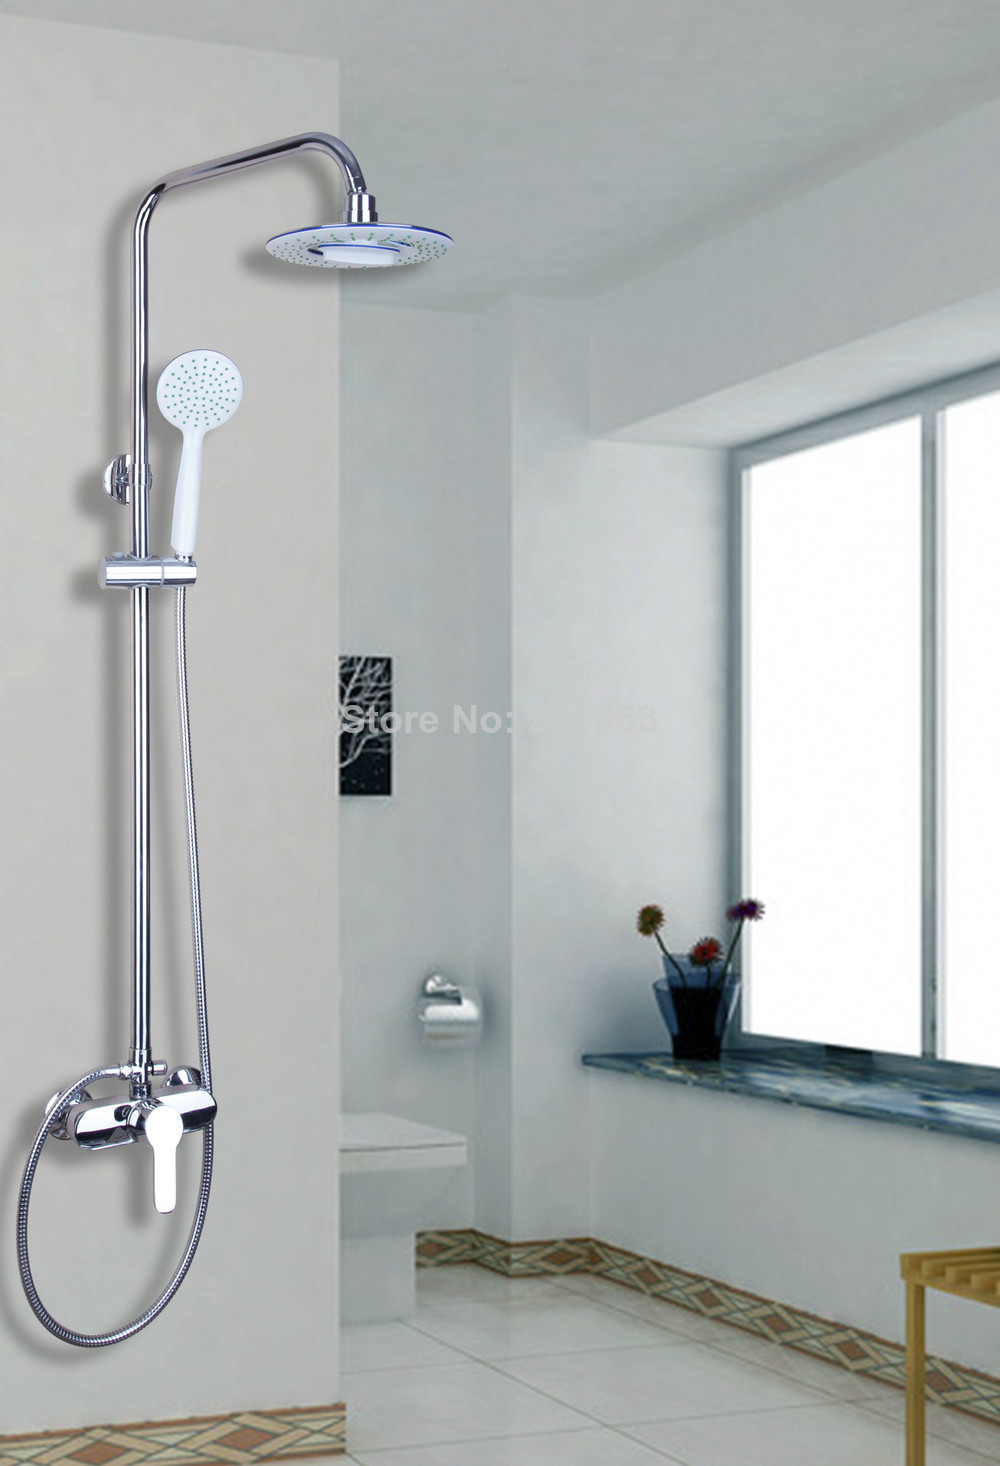 Unusual Shower Head Systems Gallery - Bathtub for Bathroom Ideas ...